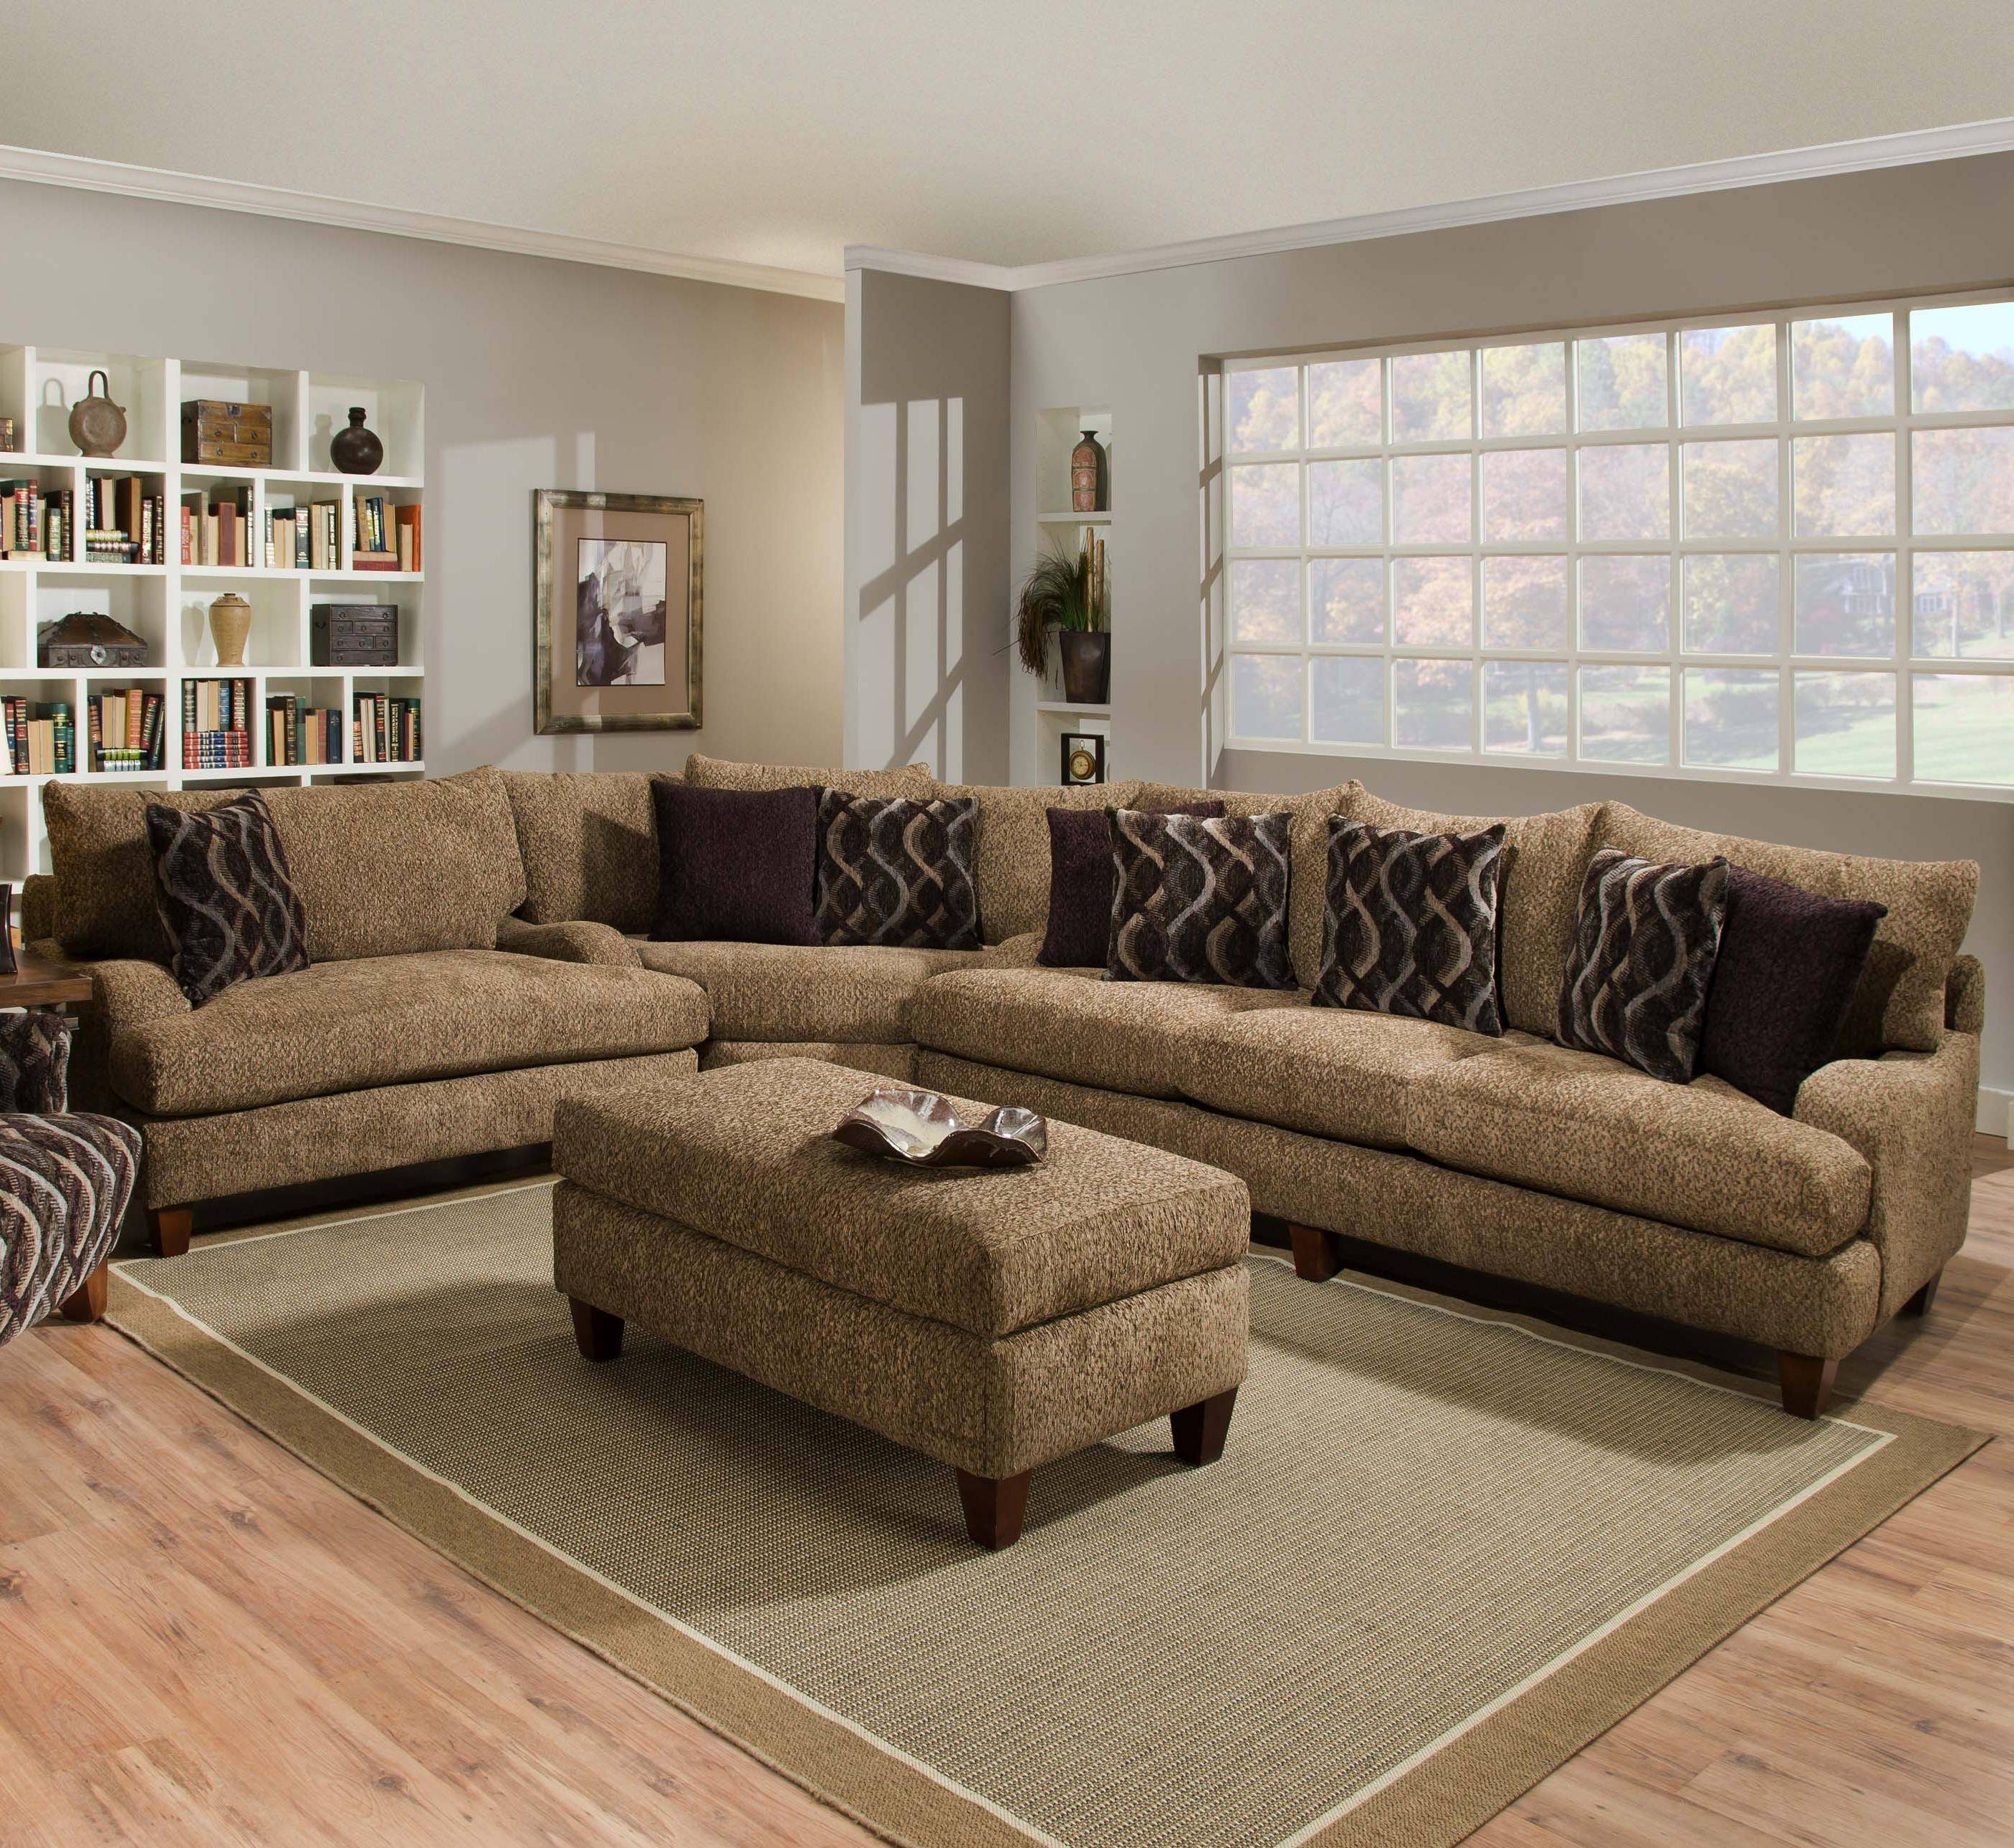 Fascinating Cheap U Shaped Sectional Sofas 12 In Media Sofa regarding Media Sofa Sectionals (Image 4 of 25)